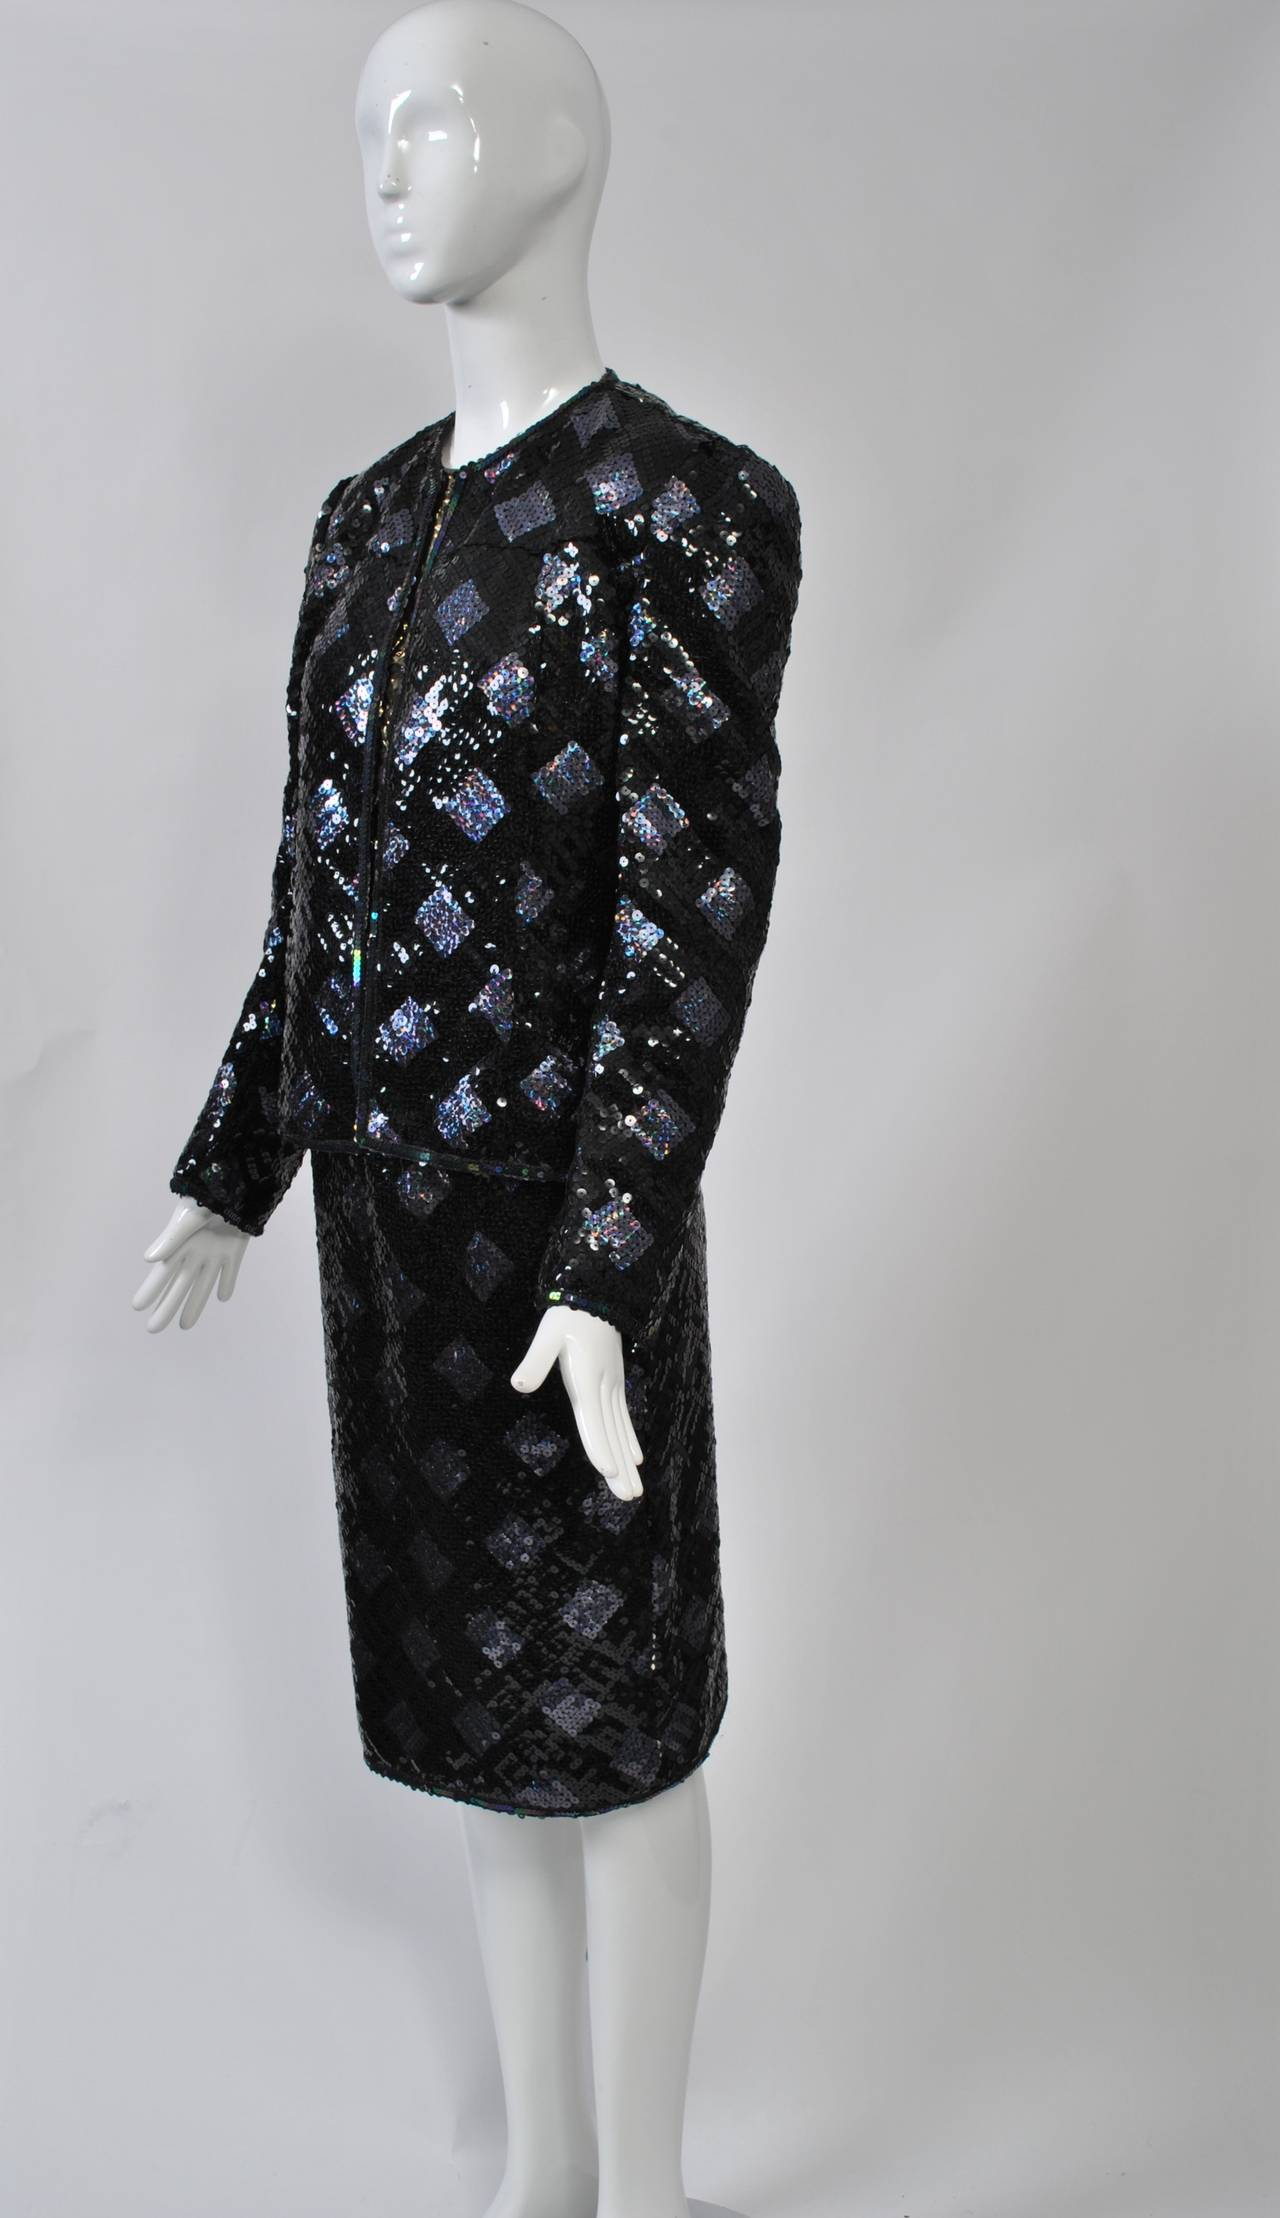 Three-piece evening suit by Adolfo, the slim skirt and collarless jacket in diamond-patterned black and iridescent sequins. The sleeveless shell is made of a krinkle metallic gold fabric, as is the lining of the jacket and the waistband of the